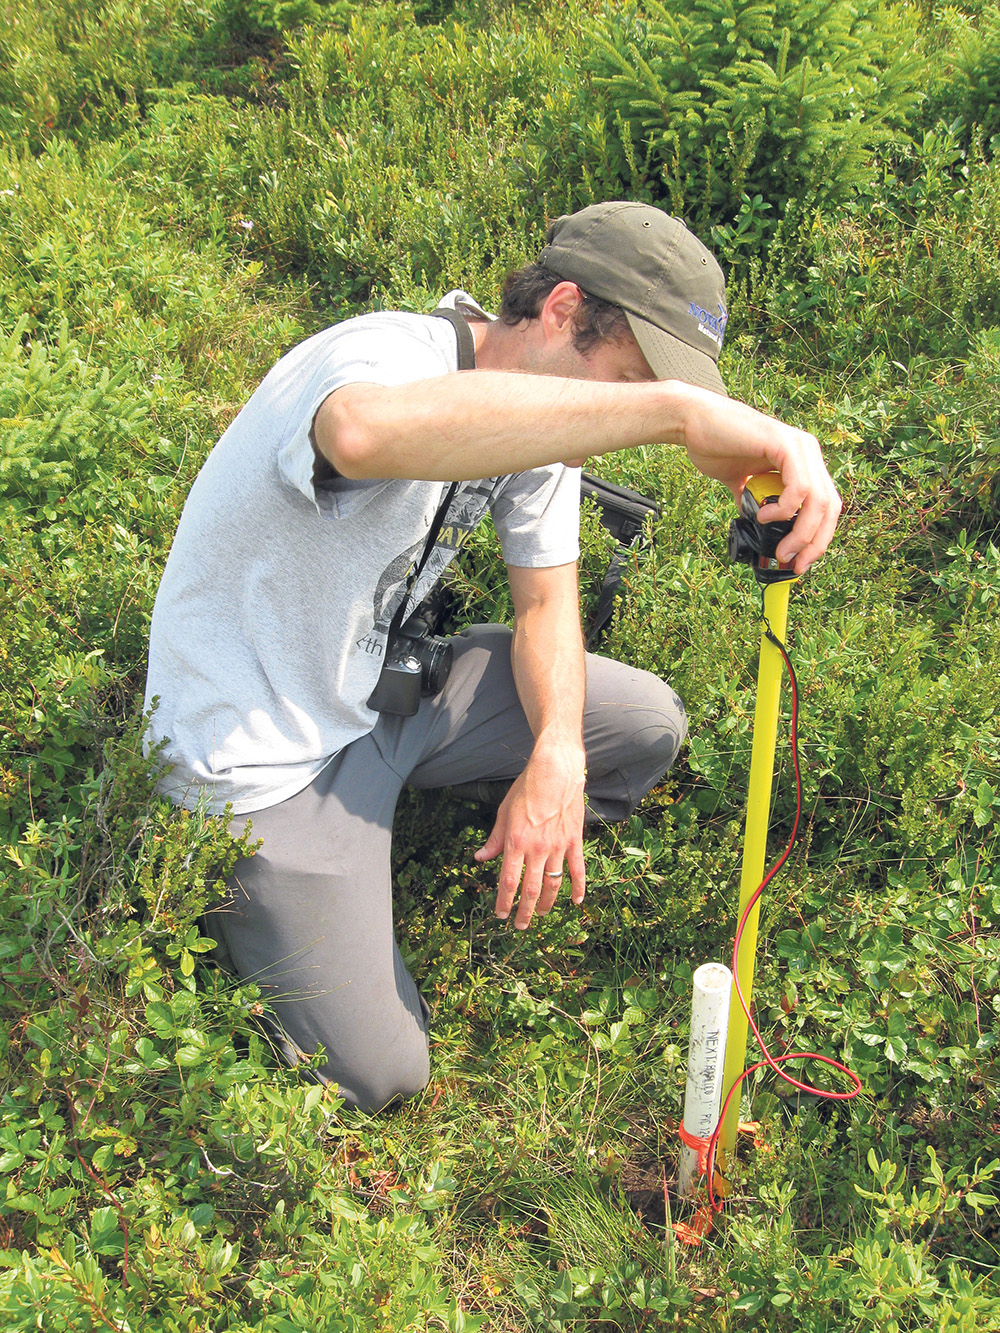 Conservation initiatives in Nova Scotia are protecting habitat for the eastern mountain avens, a plant that is found in only three locations worldwide.